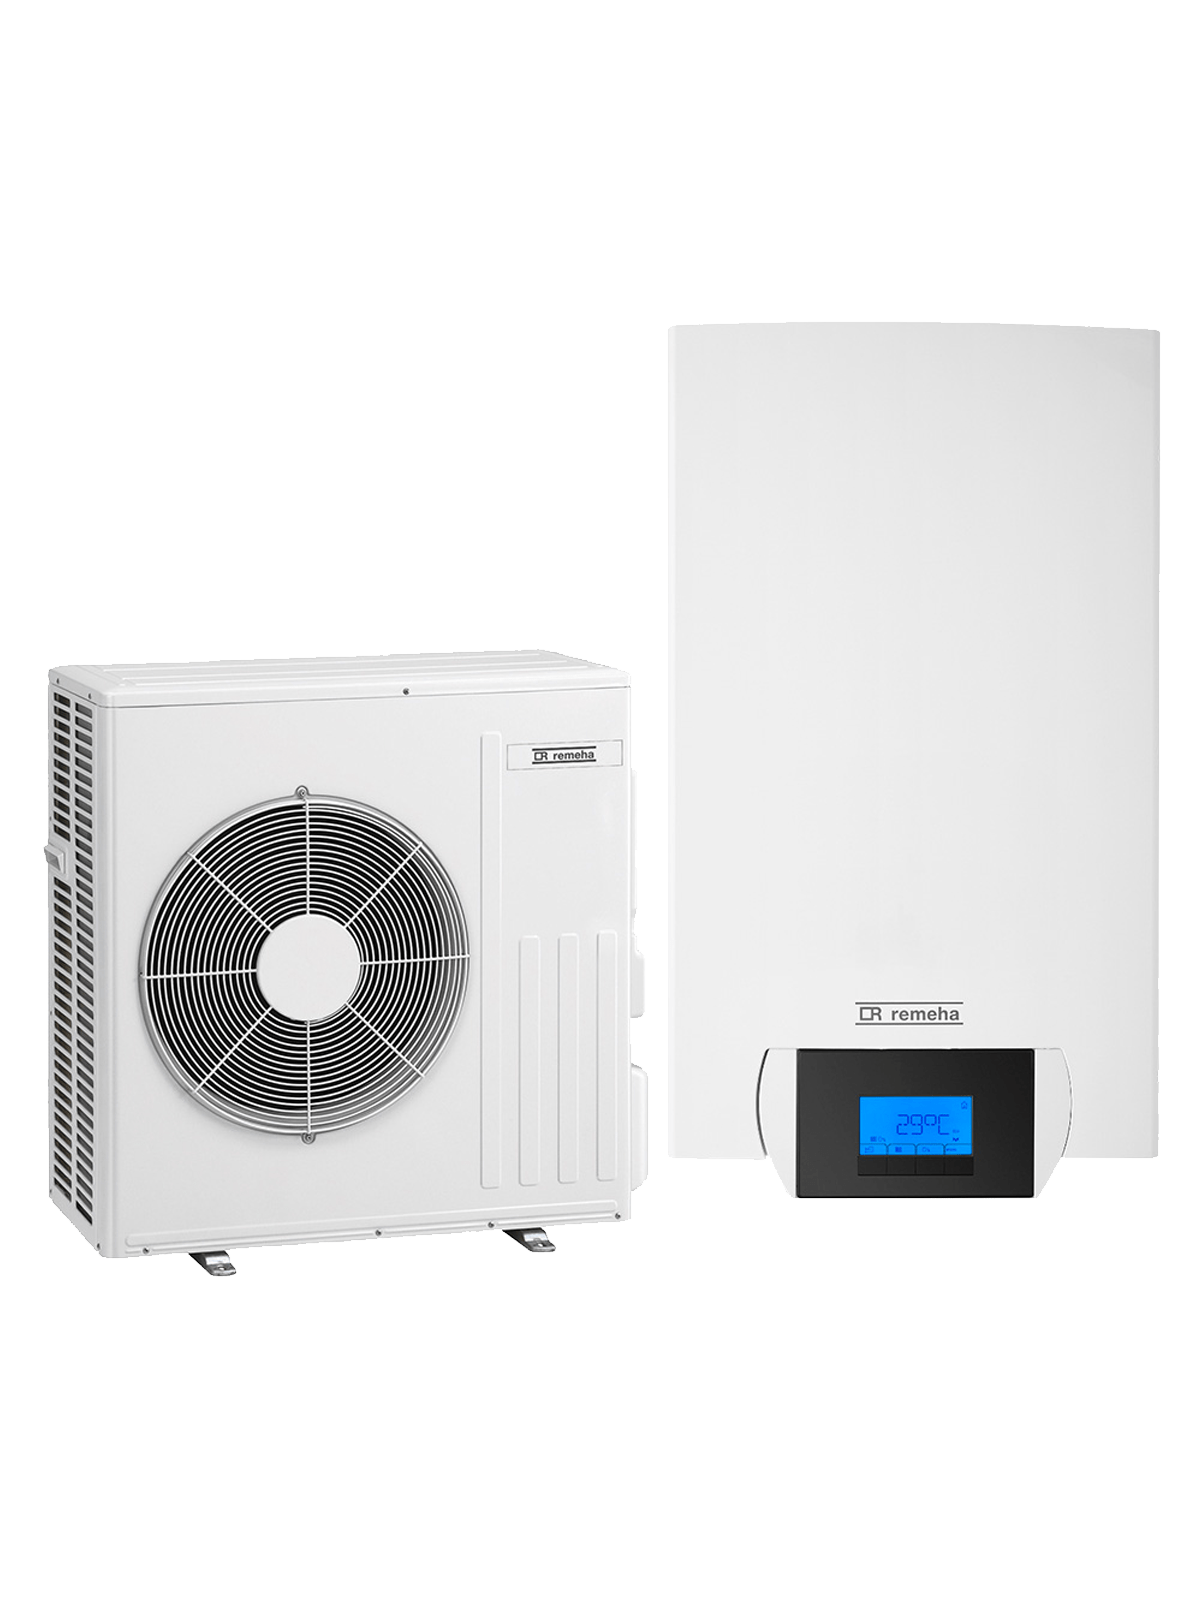 Remeha Mercuria Hybride warmtepomp 8,0 kW